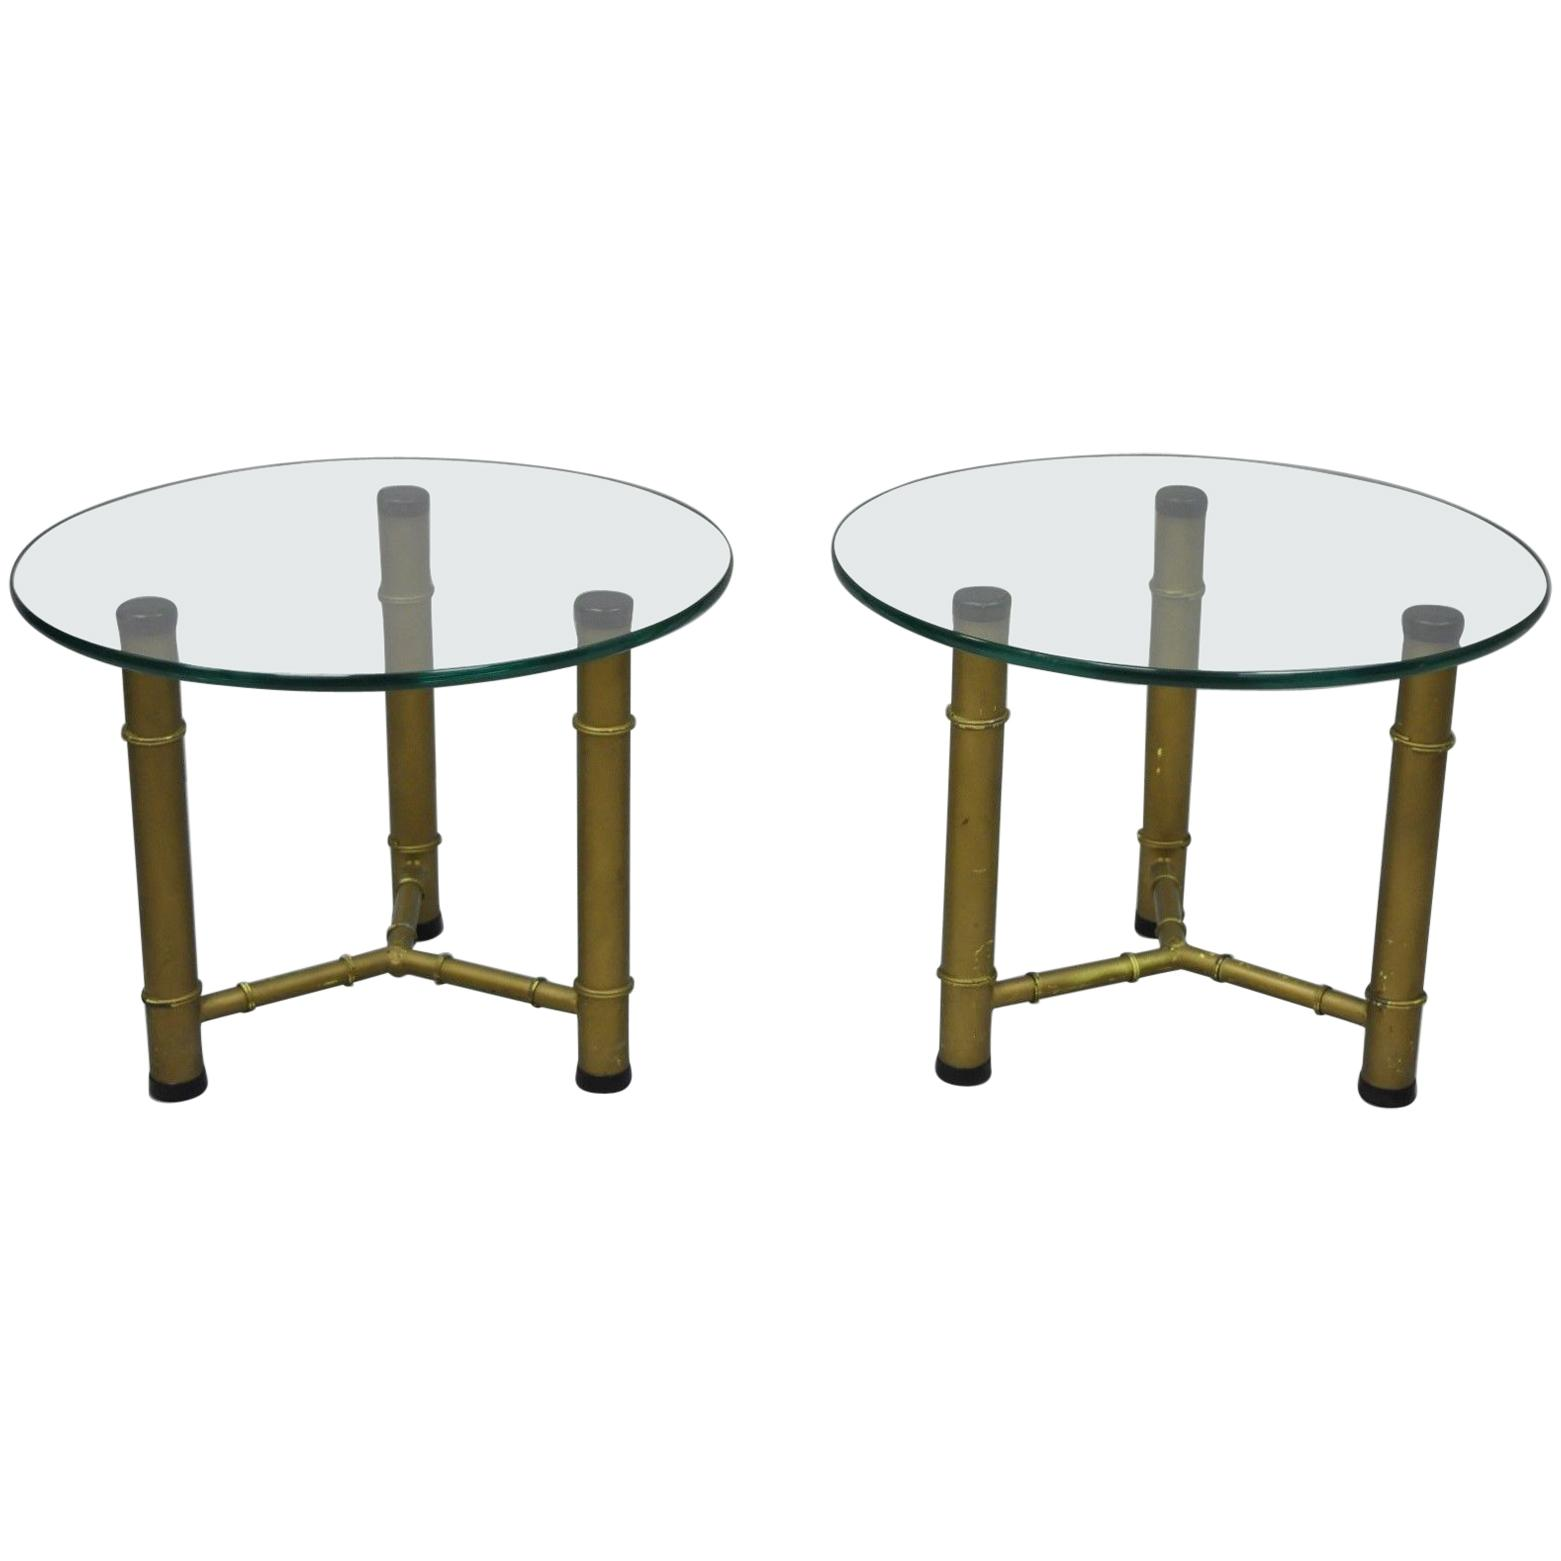 pair metal faux bamboo round glass top low side end tables master table hollywood regency for ethan allen country french three legged lexington recollections bedroom furniture